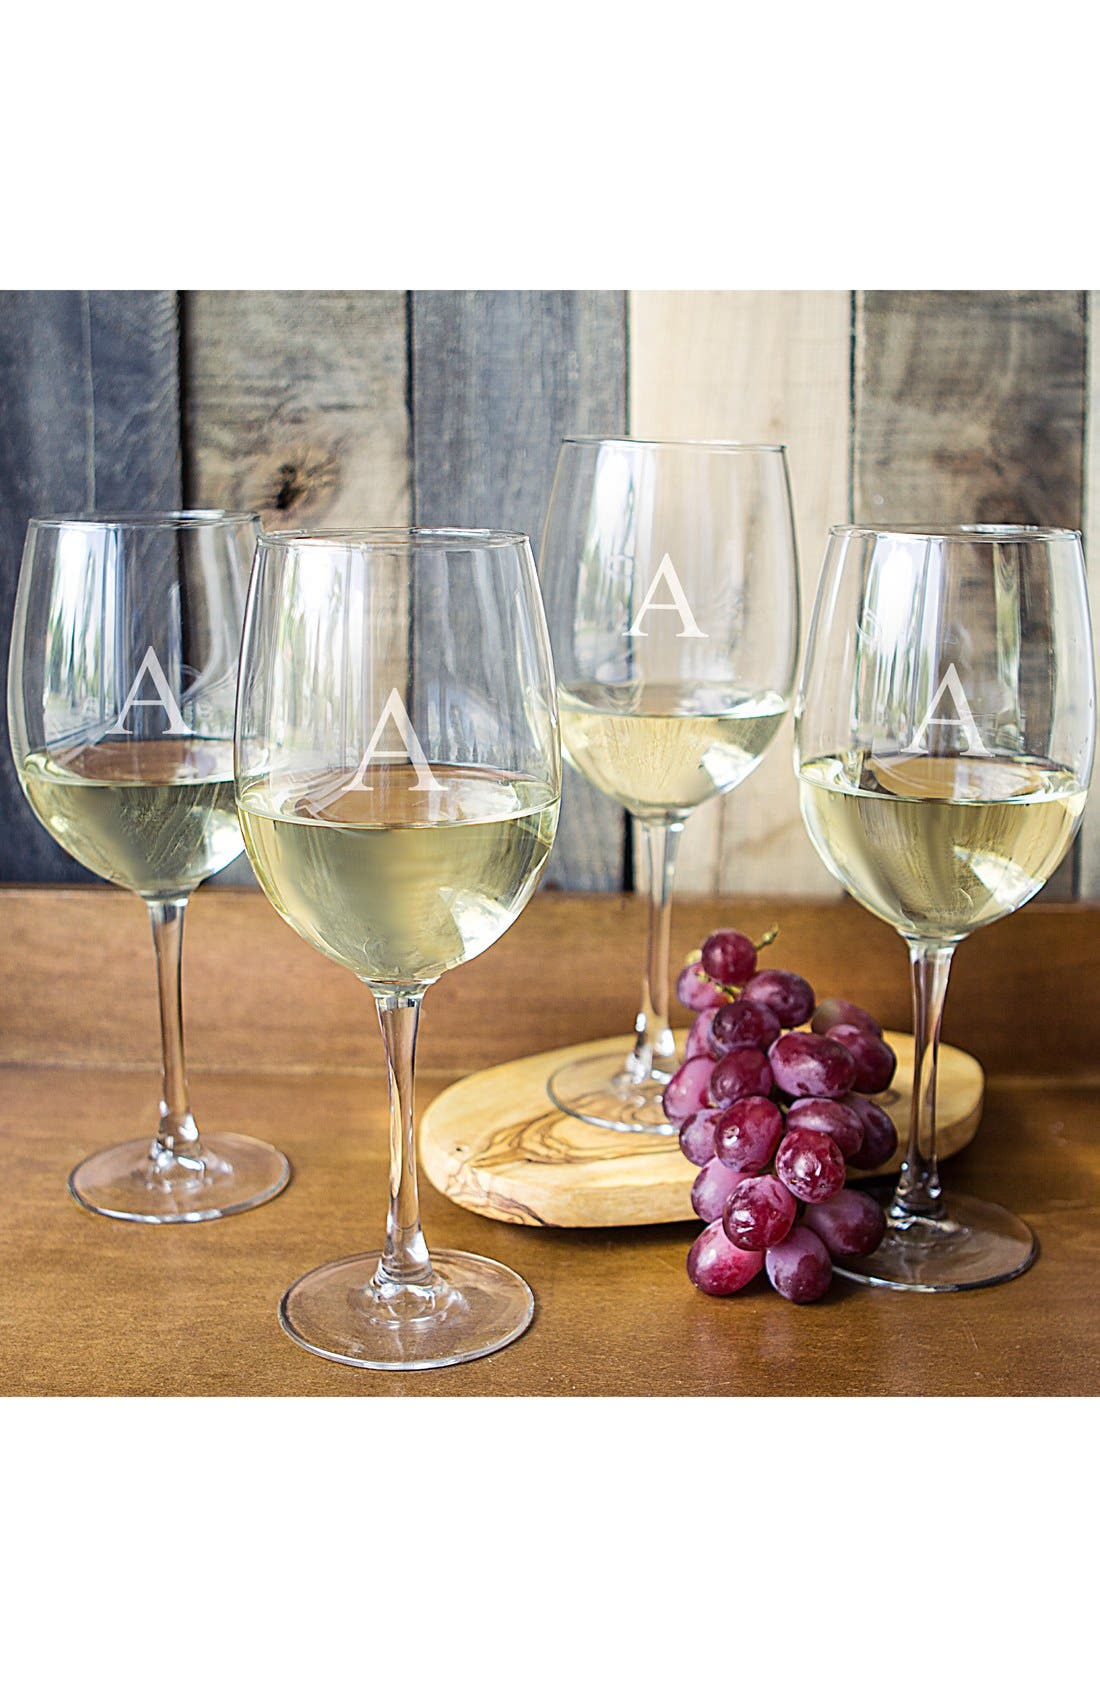 Alternate Image 1 Selected - Cathy's Concepts Set of 4 Personalized White Wine Glasses